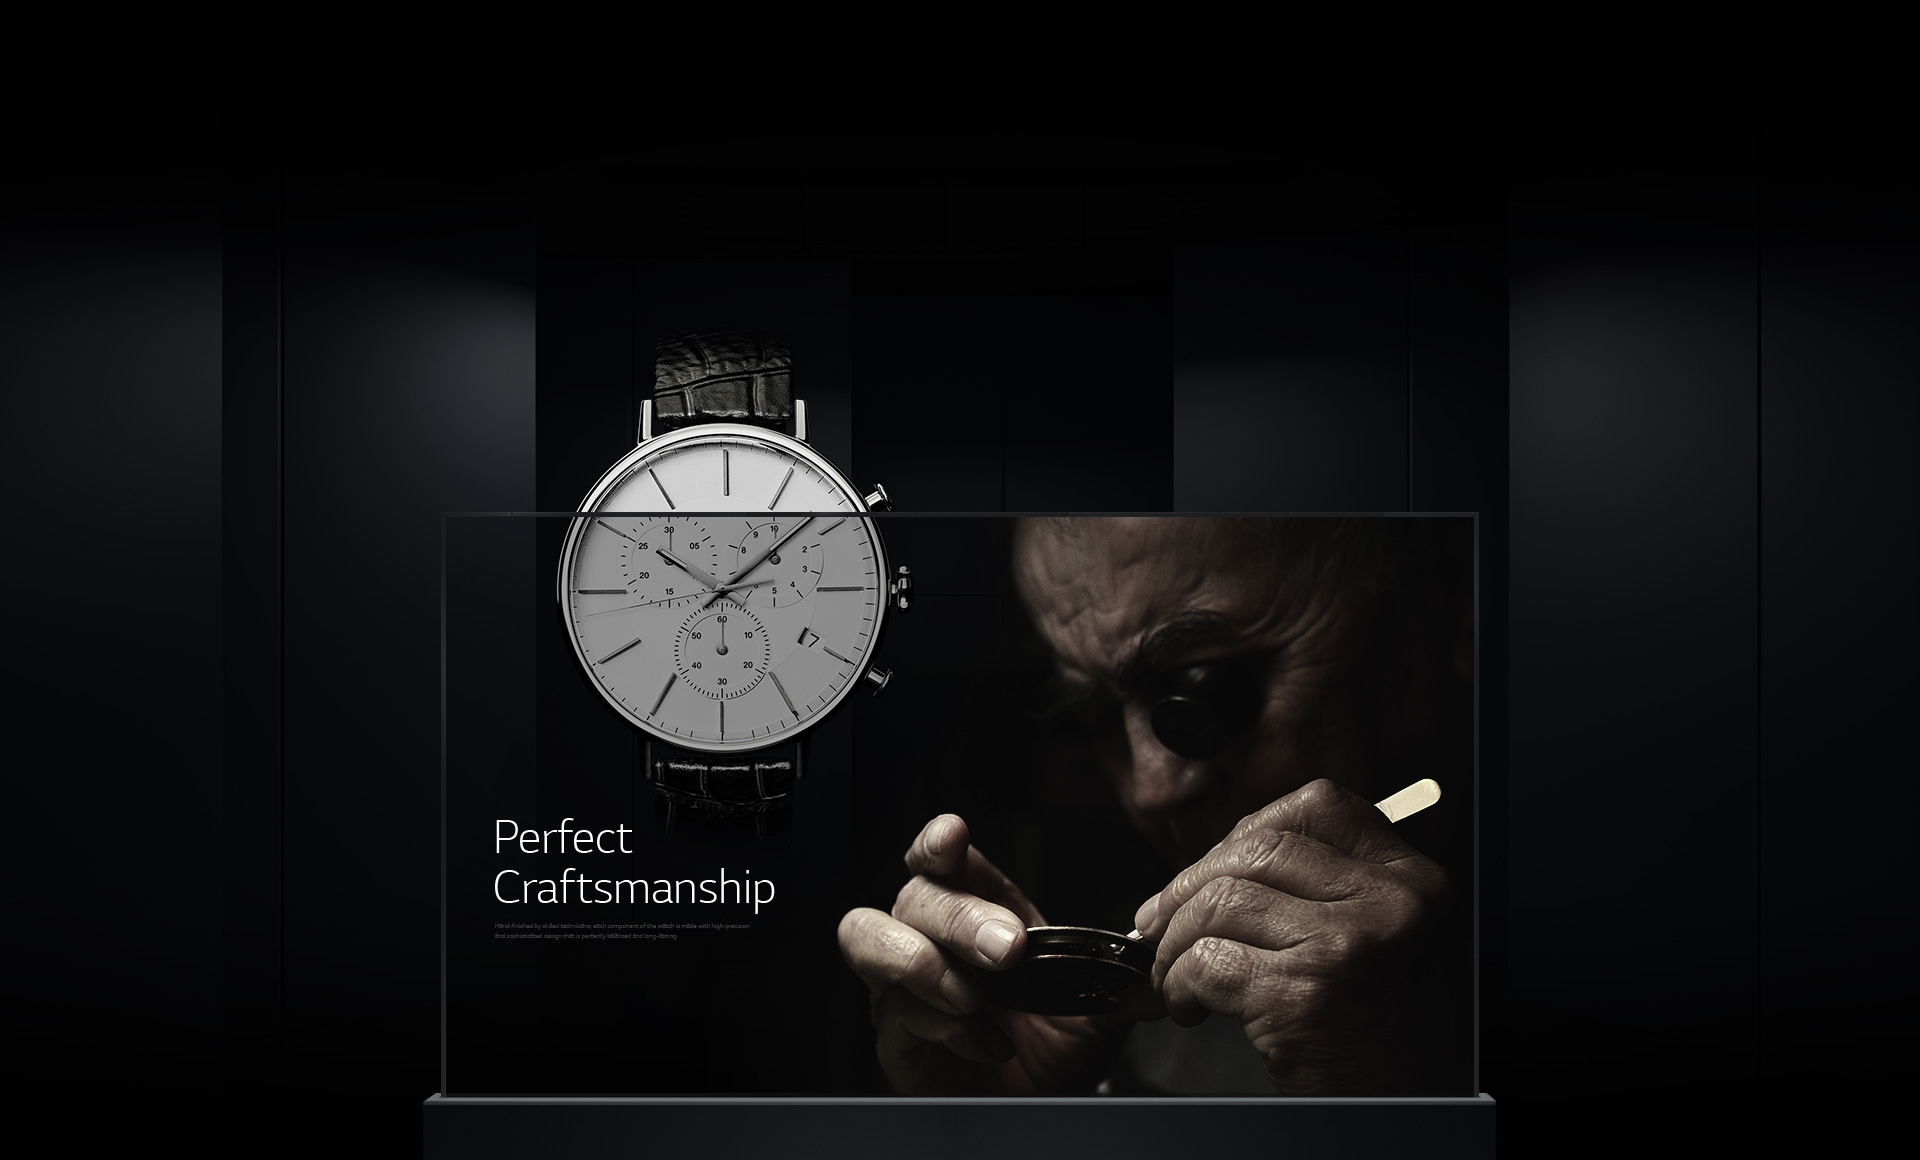 A professional craftsman displayed on a single Transparent OLED signage overlaid with a luxurious watch image in the background.